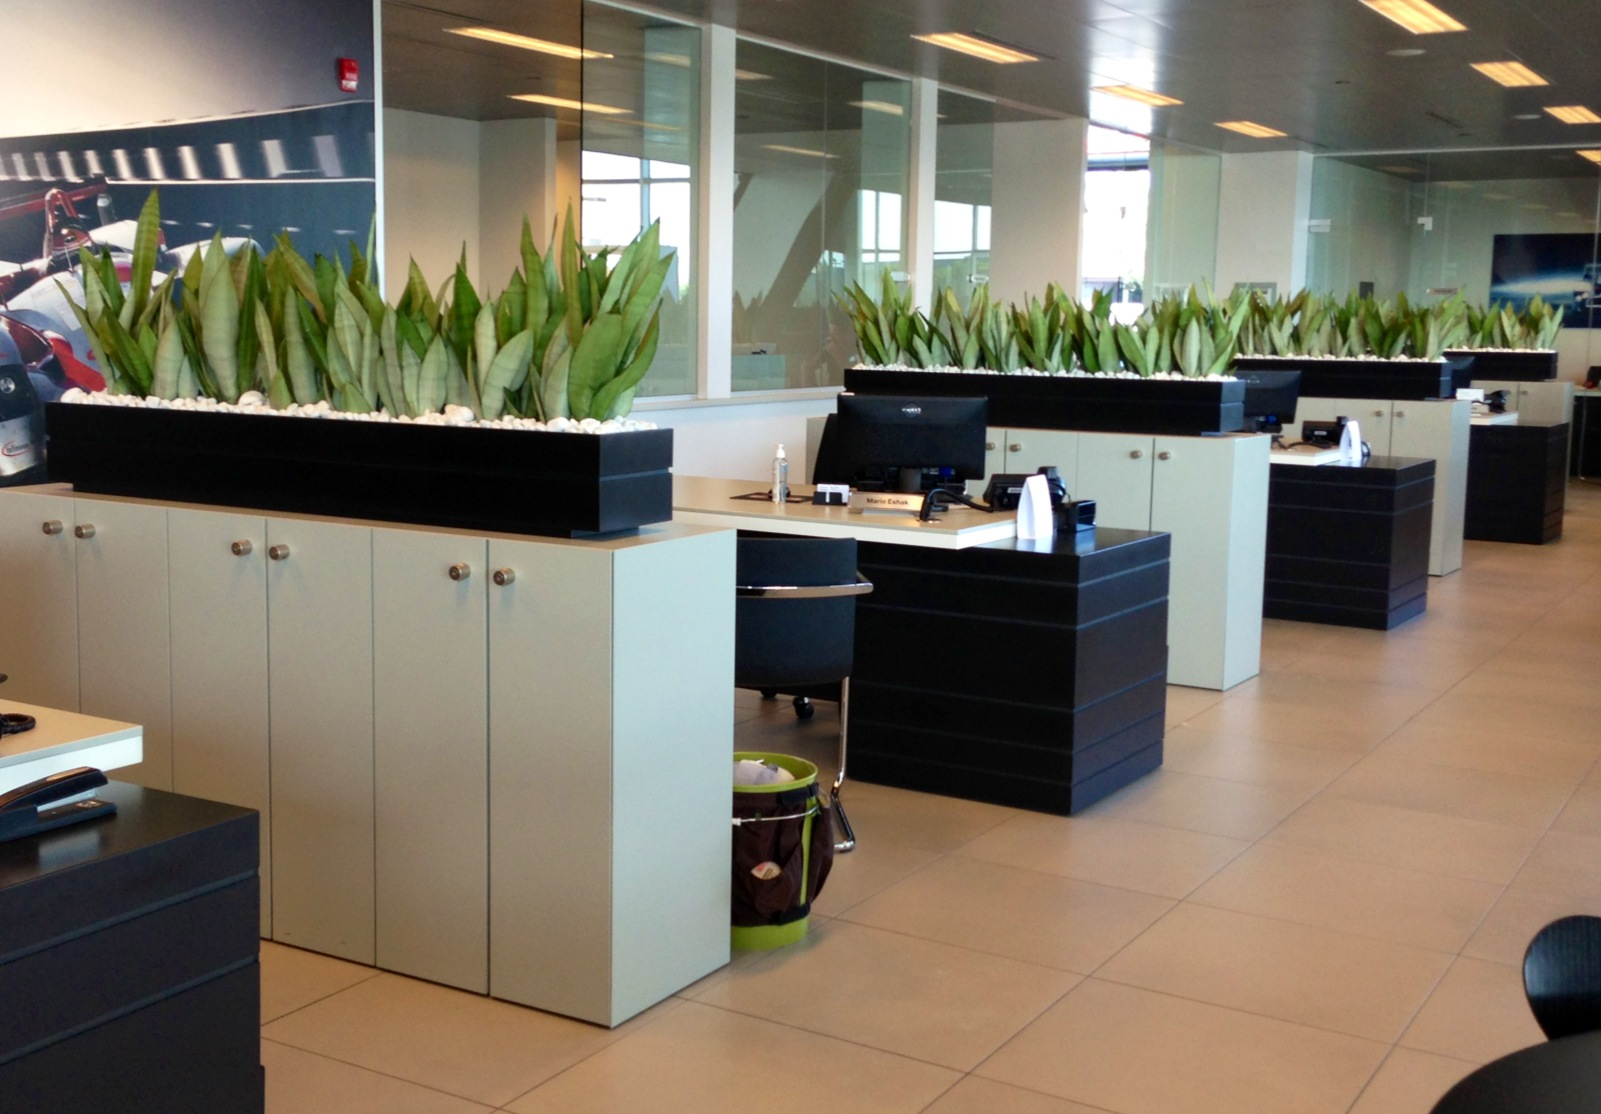 Top 8 Natural Green Plants Suits Your fice Indoors